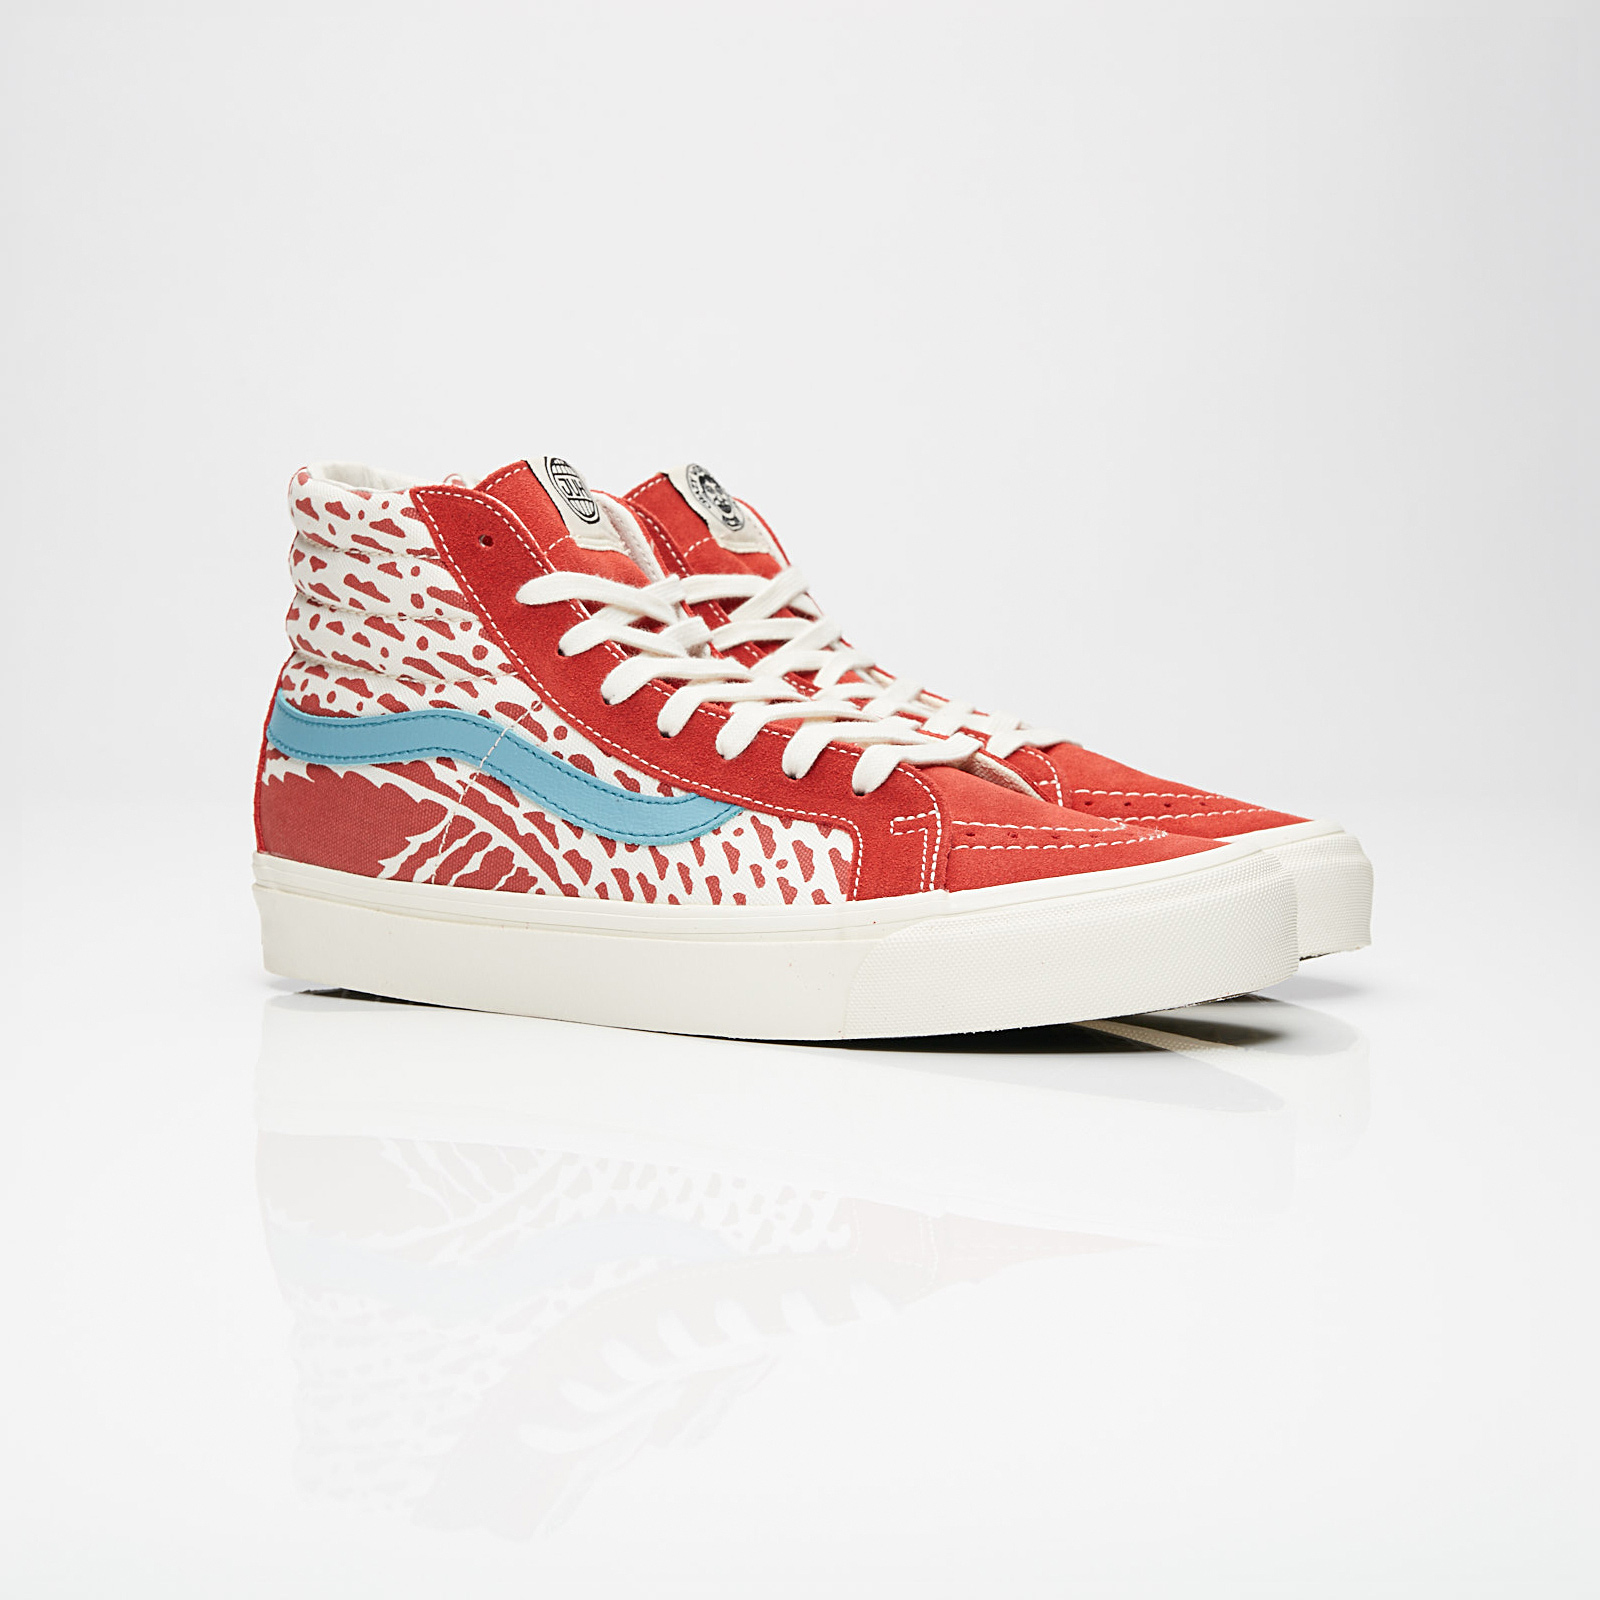 e09ba5f8af45dc Vans UA OG Sk8-Hi LX - V003t0qm4 - Sneakersnstuff I Sneakers ...